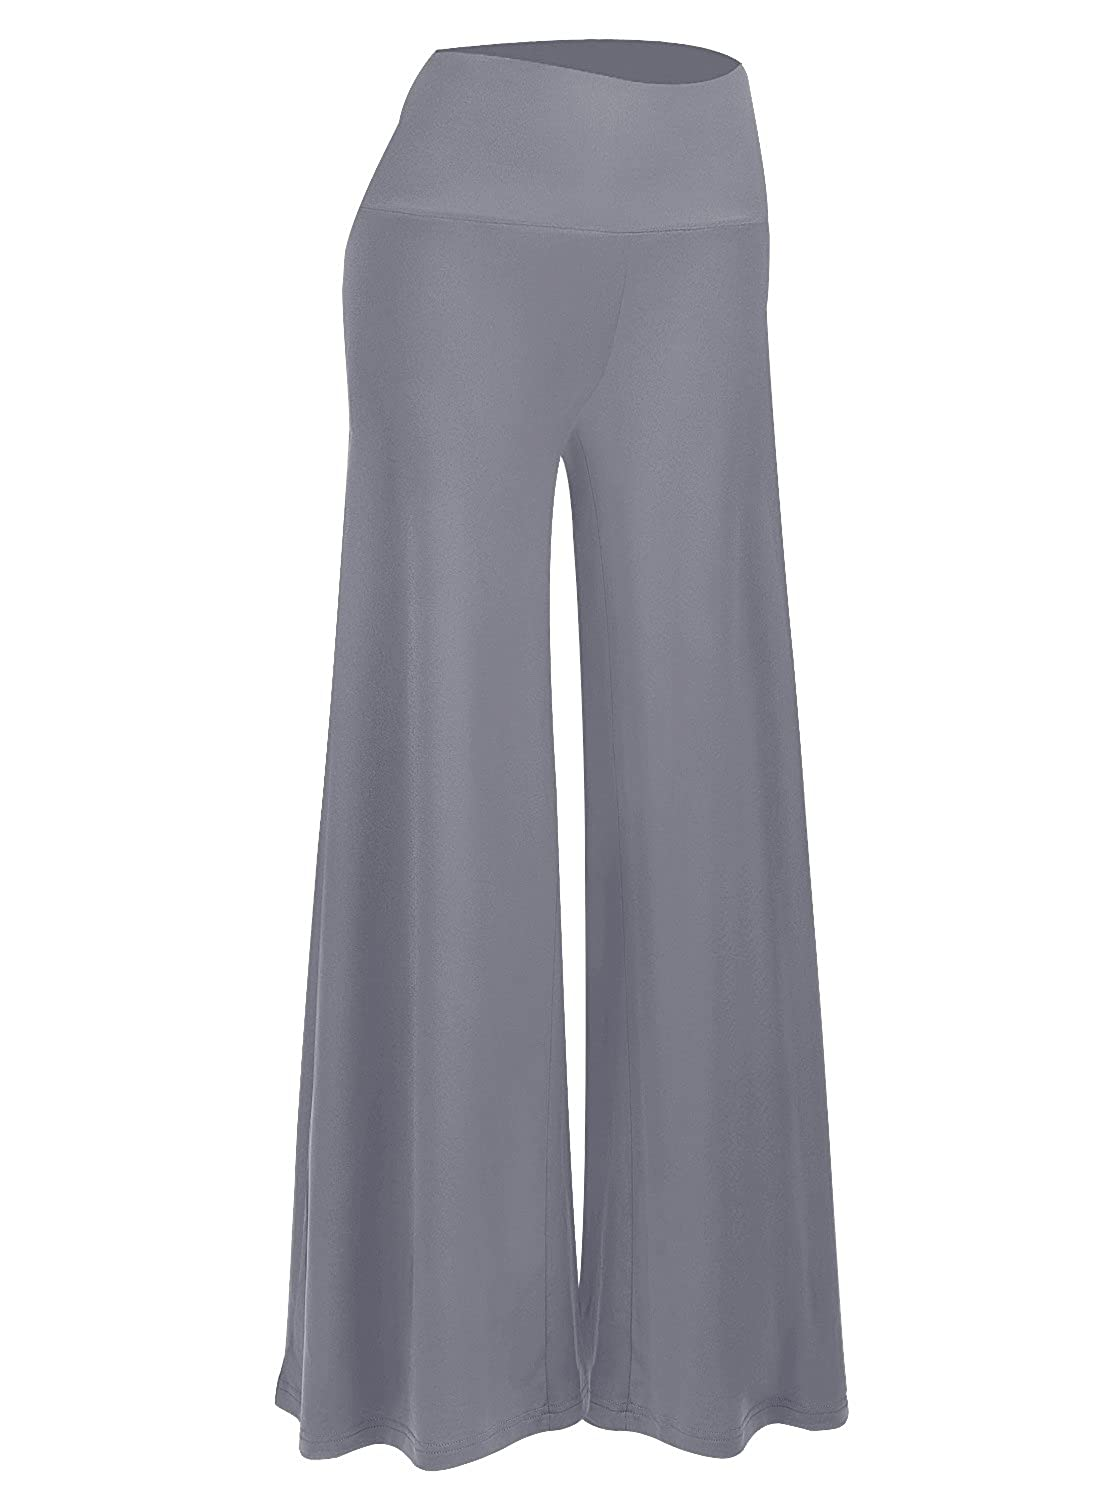 9f824ab1f8 Arolina Women s Stretchy Wide Leg Palazzo Lounge Pants at Amazon Women s  Clothing store